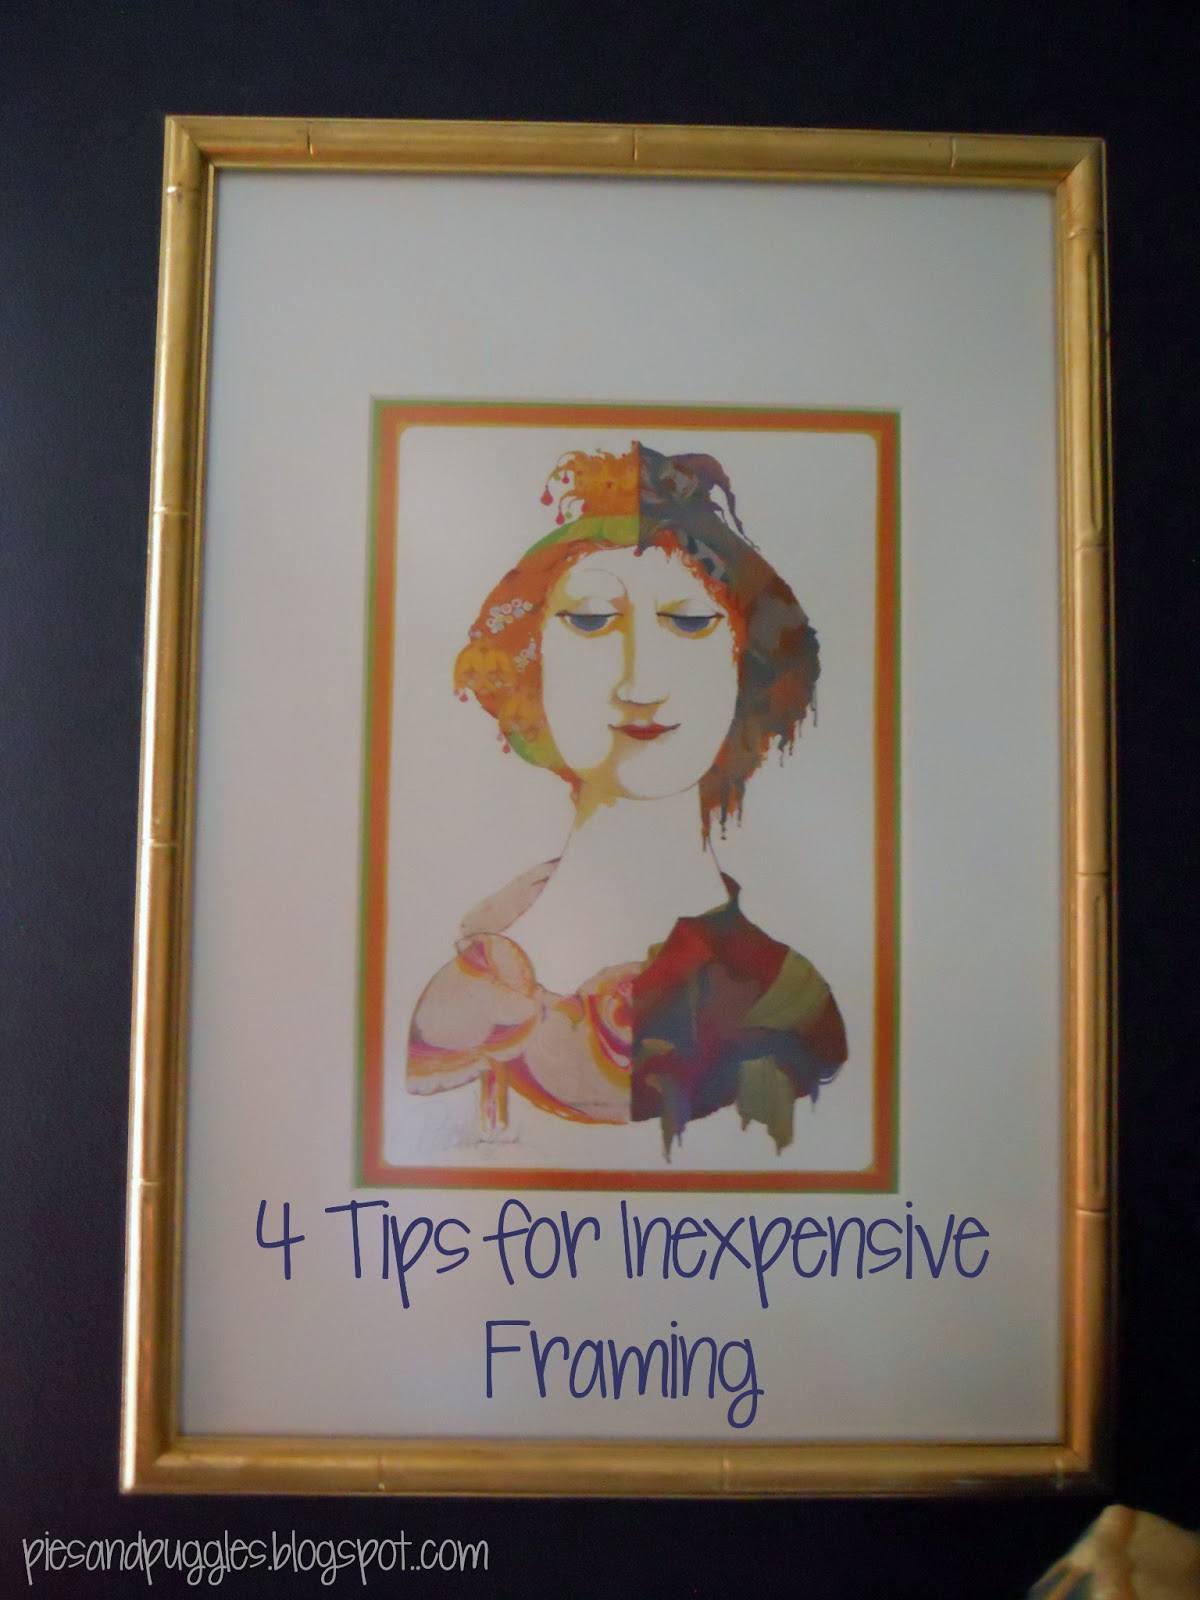 Pies and Puggles: You\'ve been framed: 4 tips for inexpensive framing